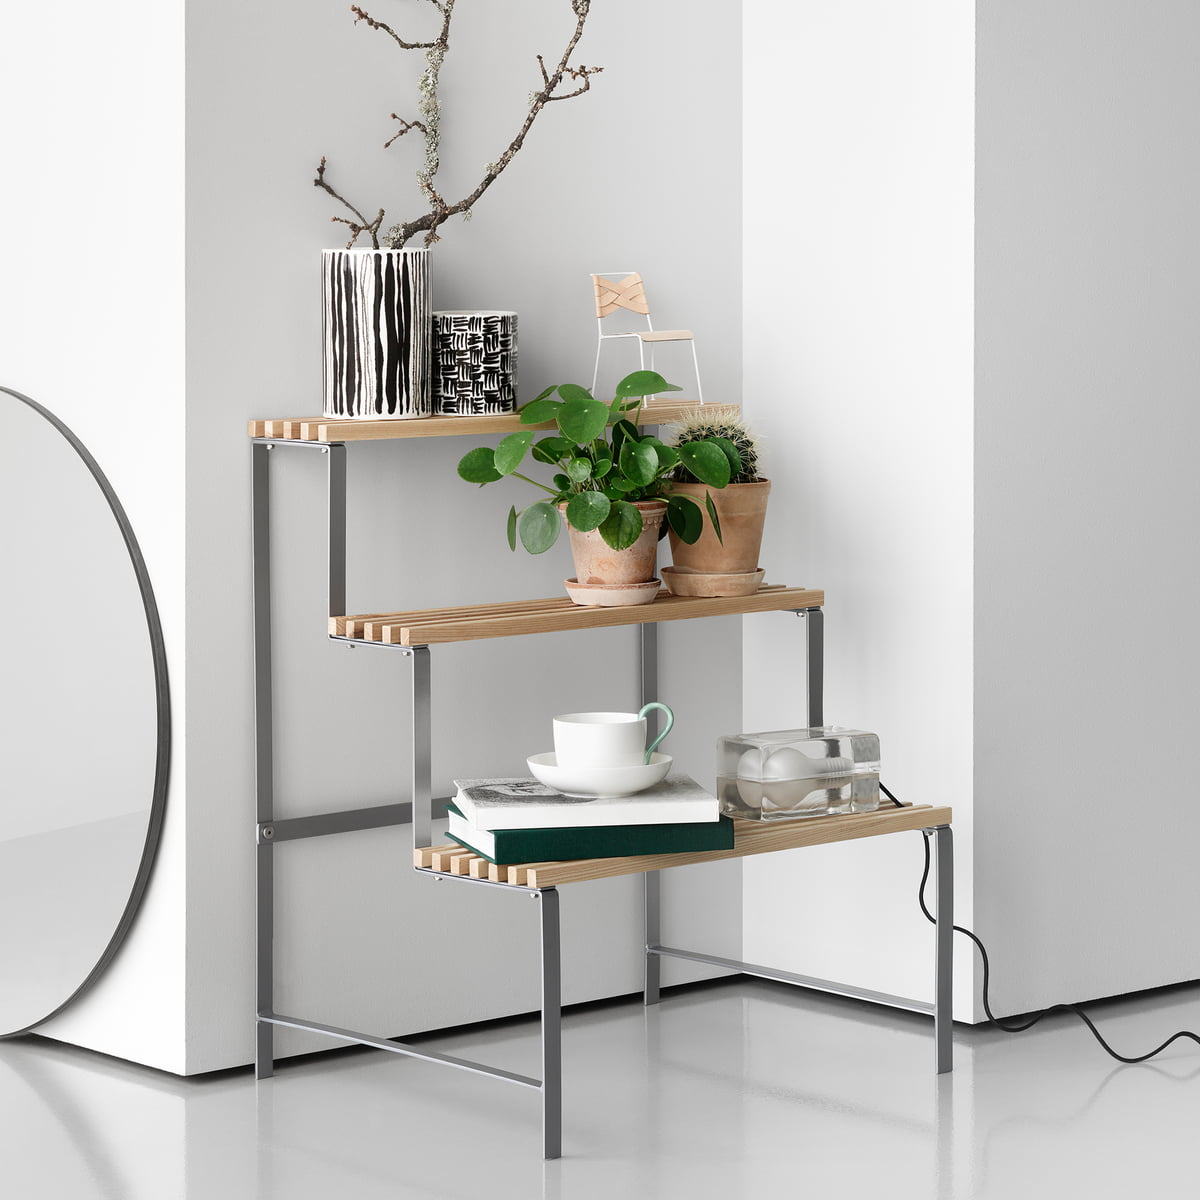 flower pot stand by design house stockholm. Black Bedroom Furniture Sets. Home Design Ideas